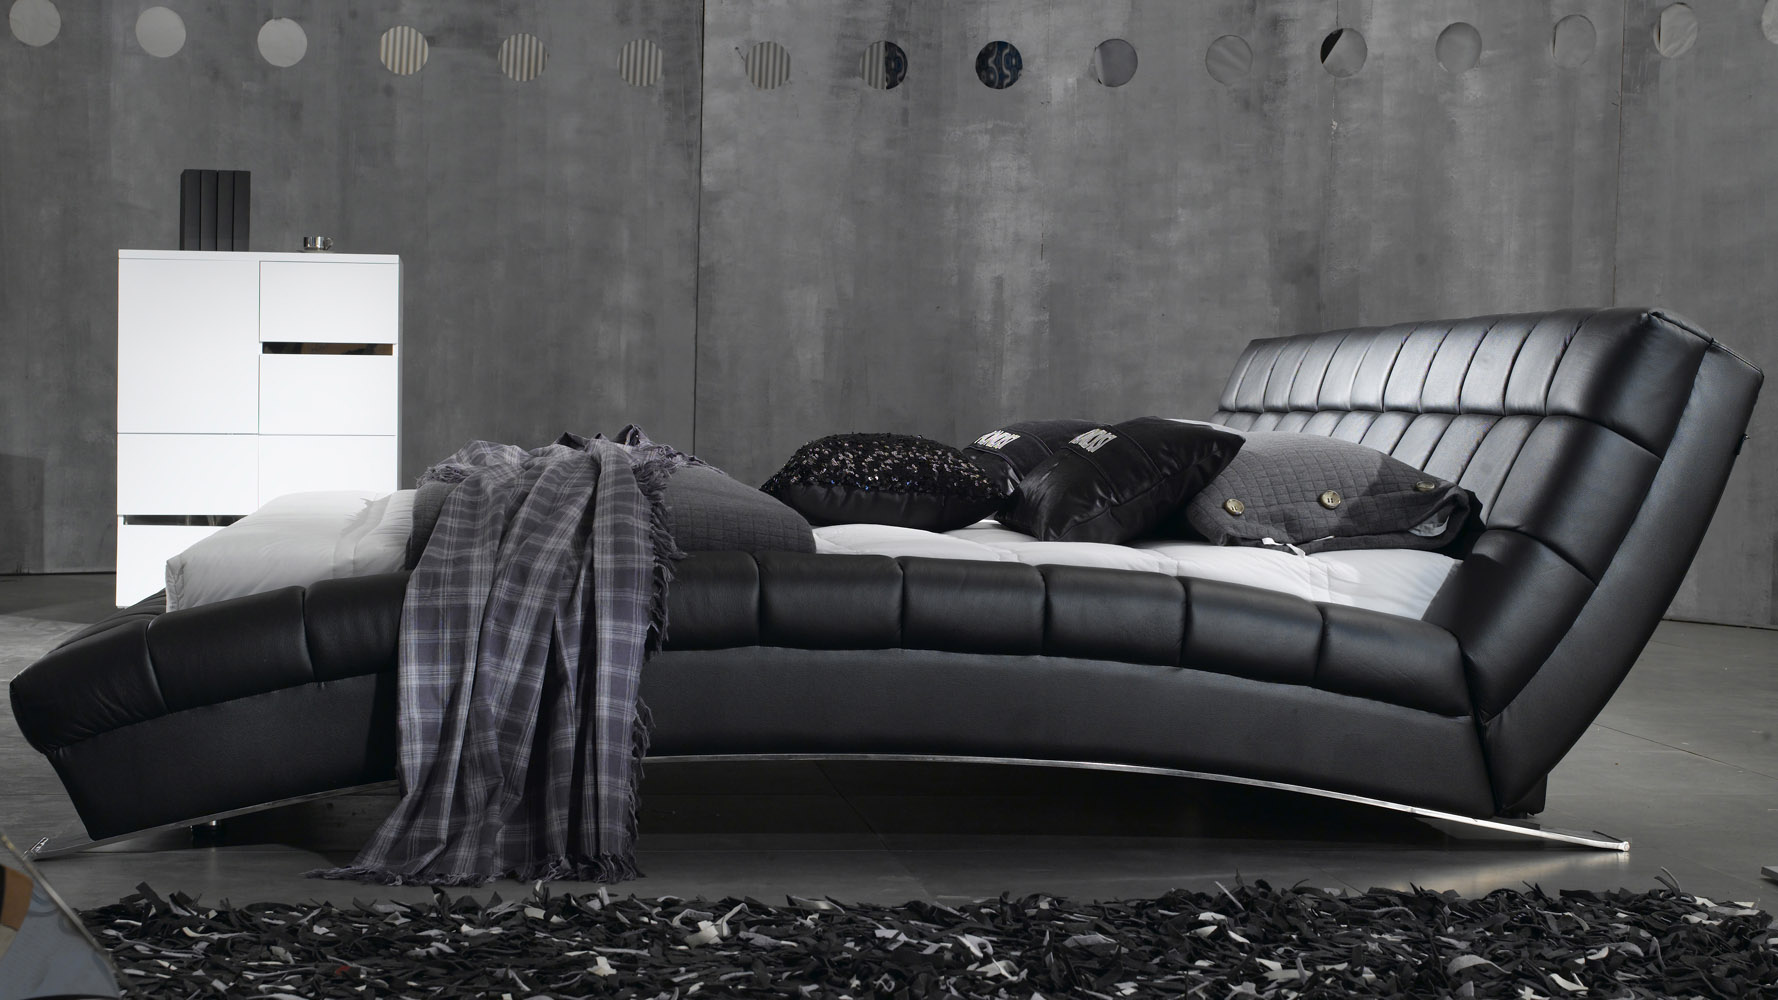 adonis black tufted leather platform bed  zuri furniture - mouse over image to zoom or click to view larger